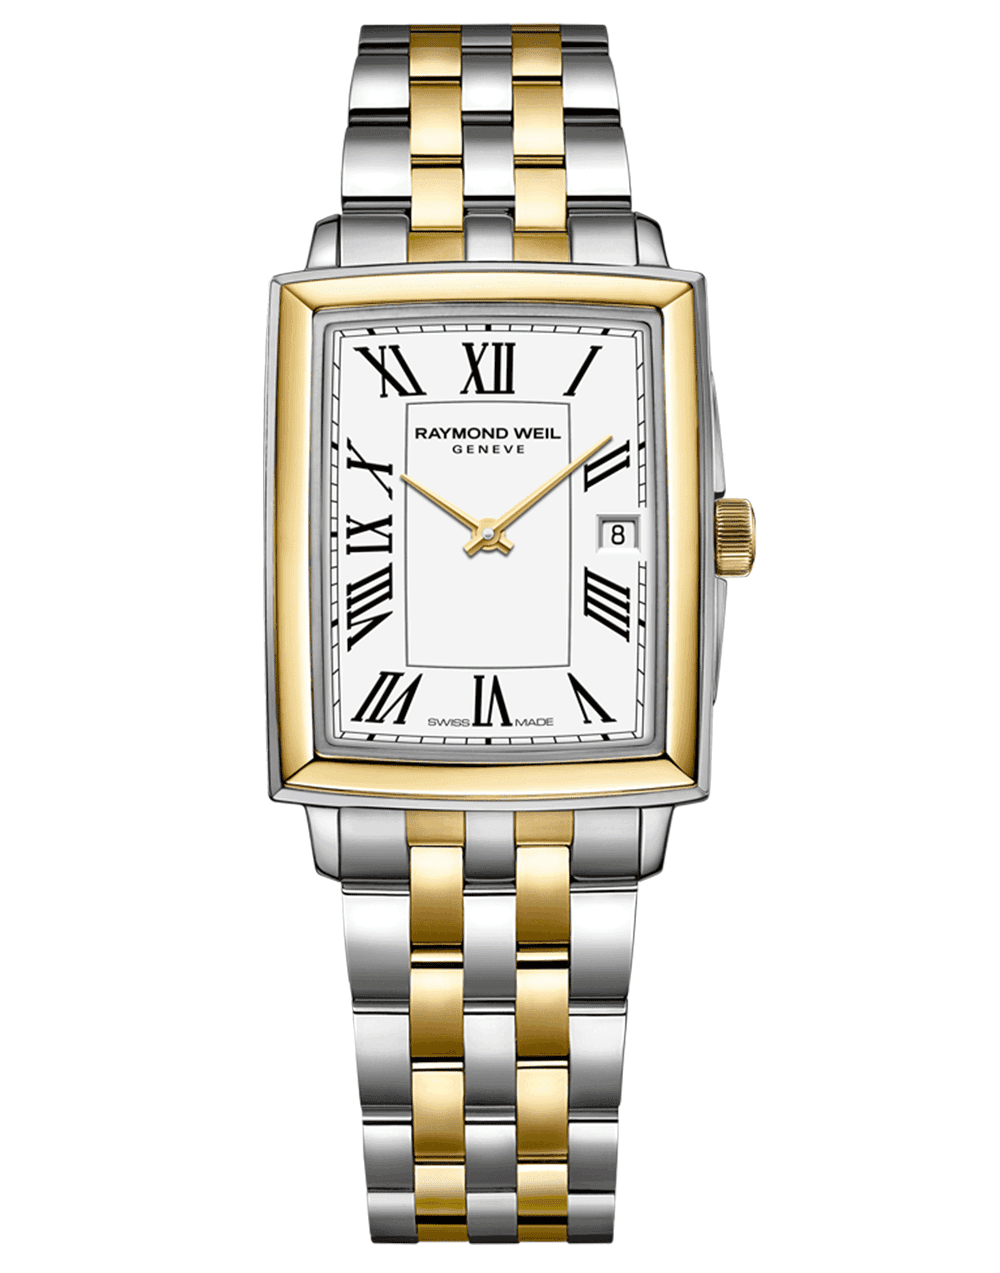 RAYMOND WEIL Toccata Square Two-Tone White Dial Roman Numerals Quartz Watch